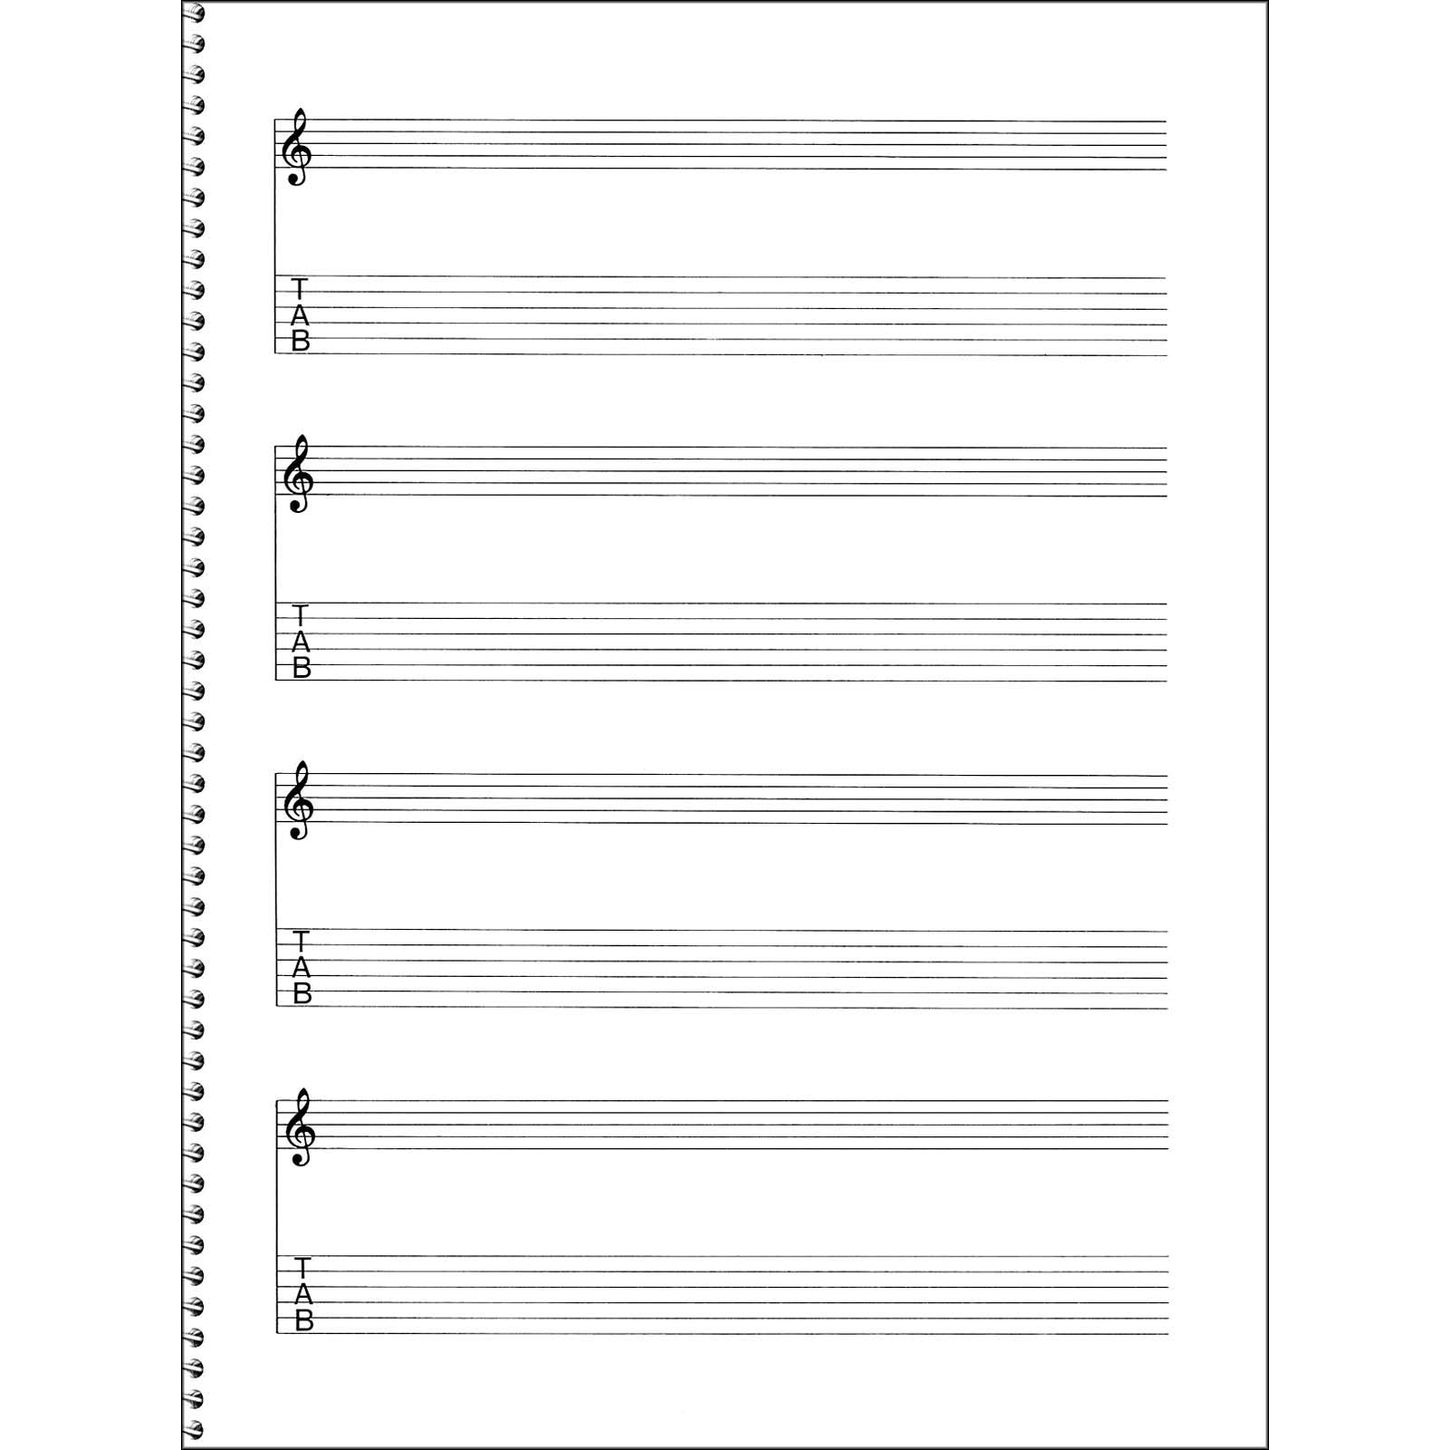 Guitar tablature blank sheets